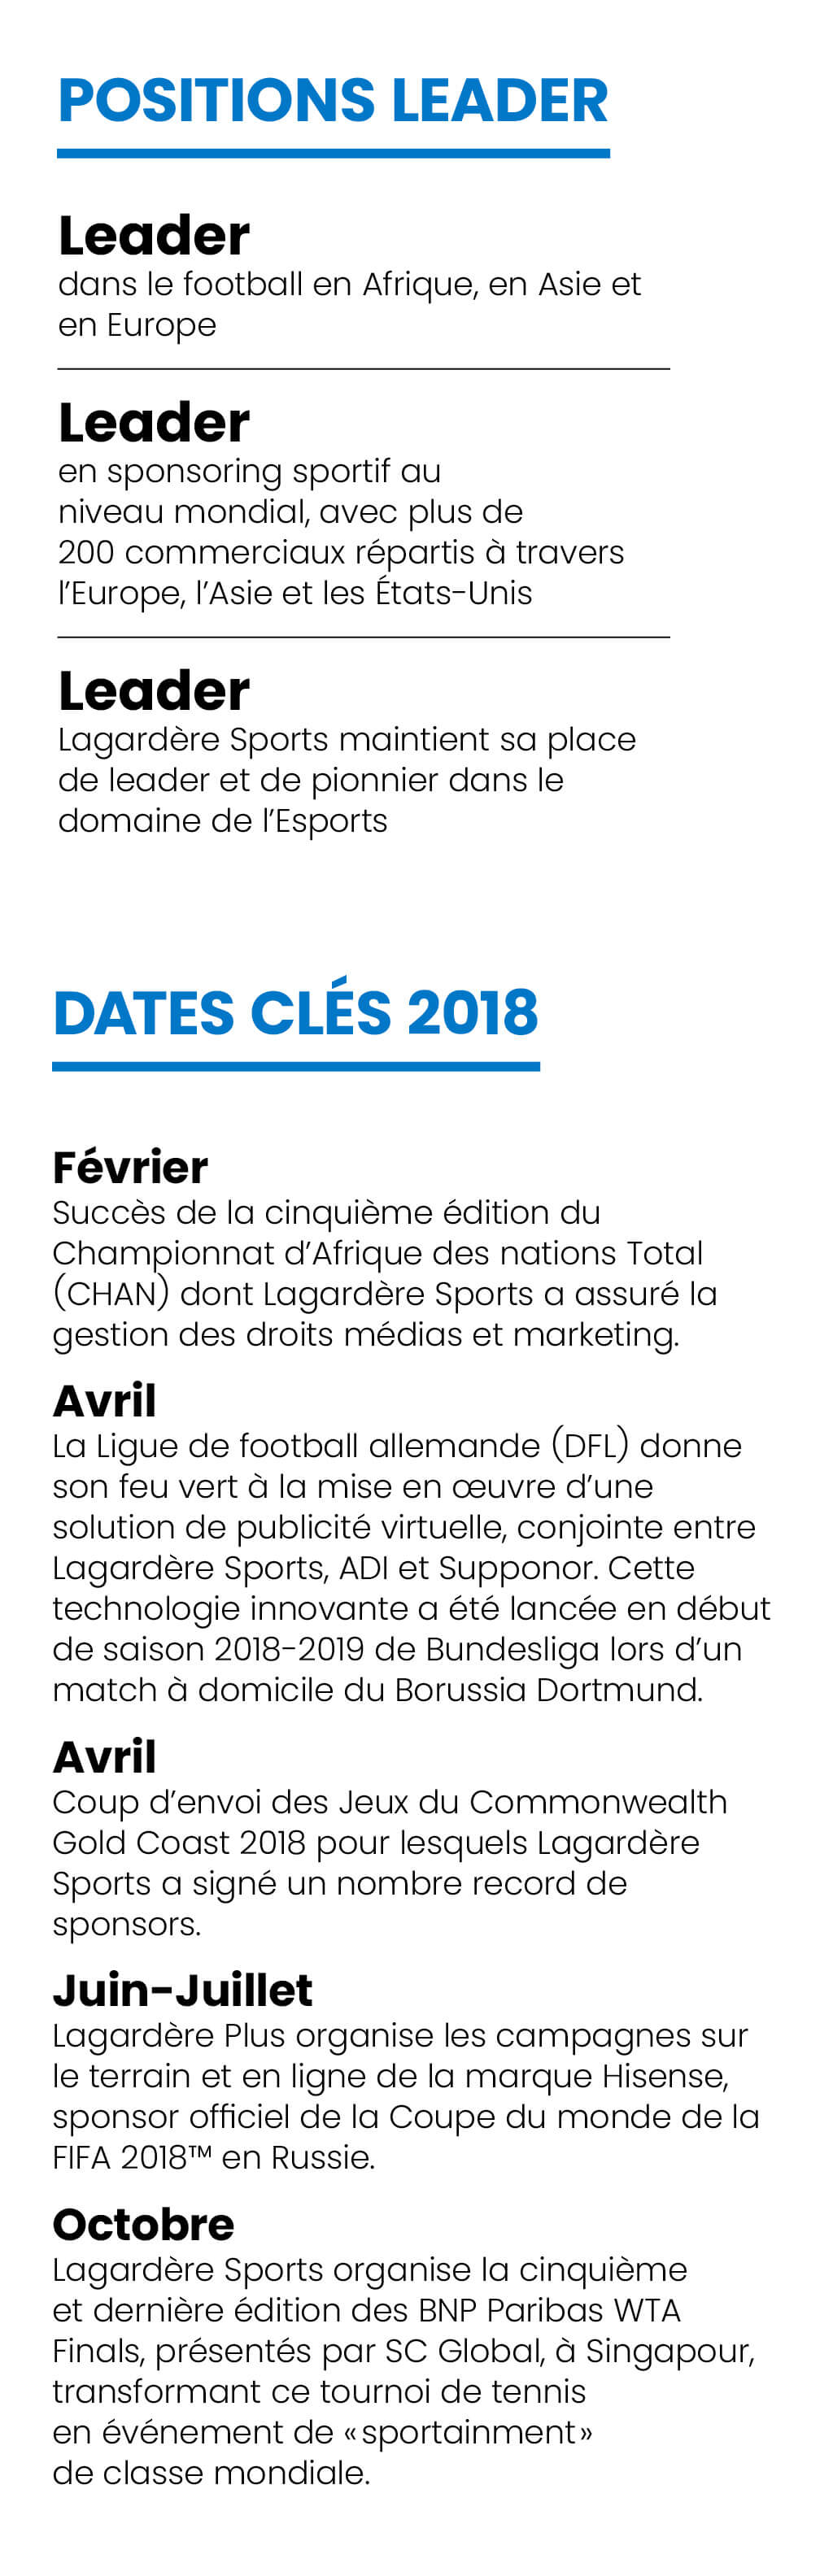 Lagardère Sports and Entertainment : Tableau de bord 2018